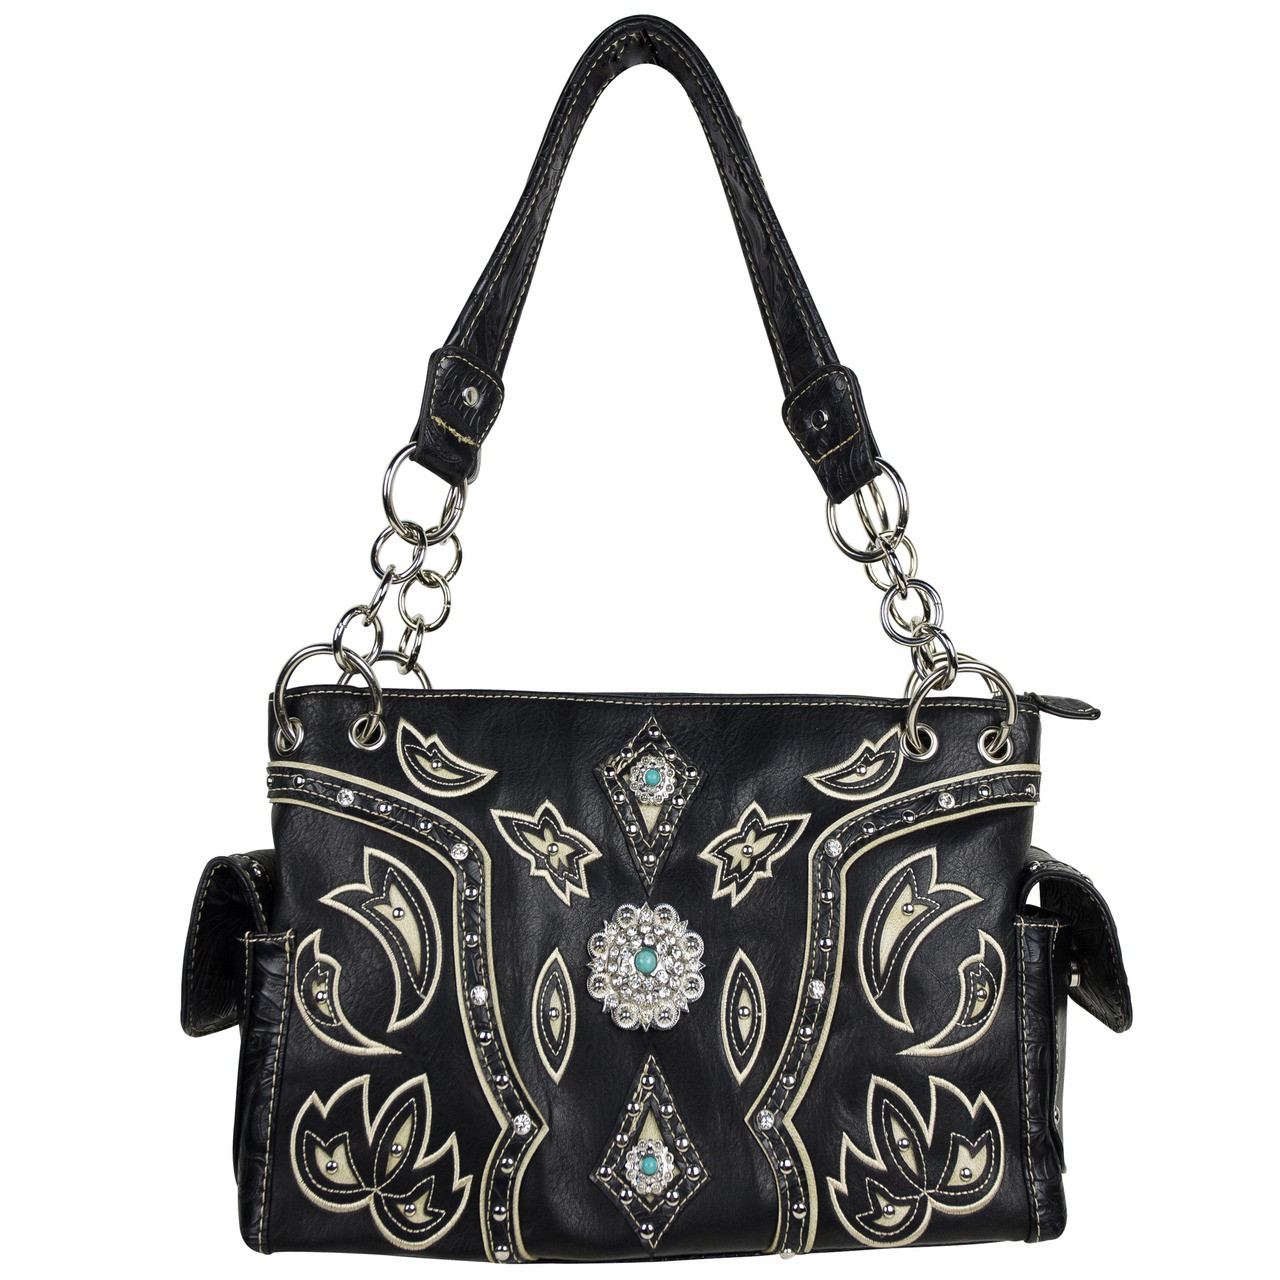 BLACK WESTERN BLUE STONE LOOK SHOULDER HANDBAG HB1-39W17BLK